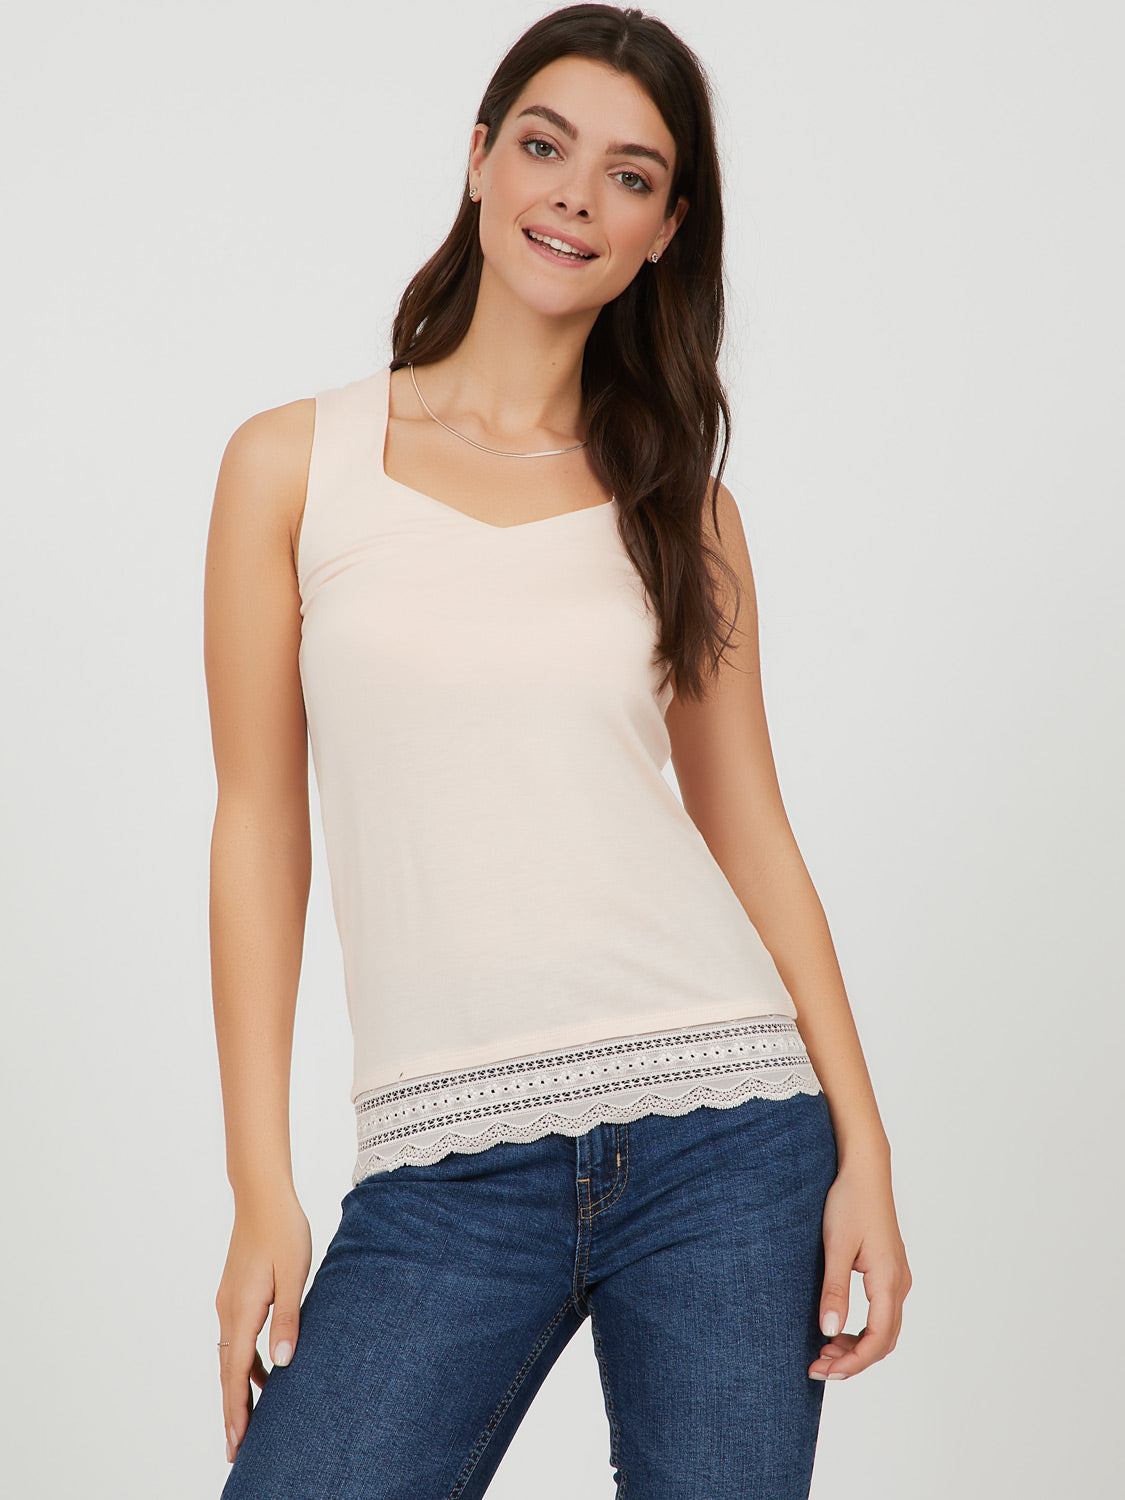 Sweetheart Neck Lace Trim Tank Top